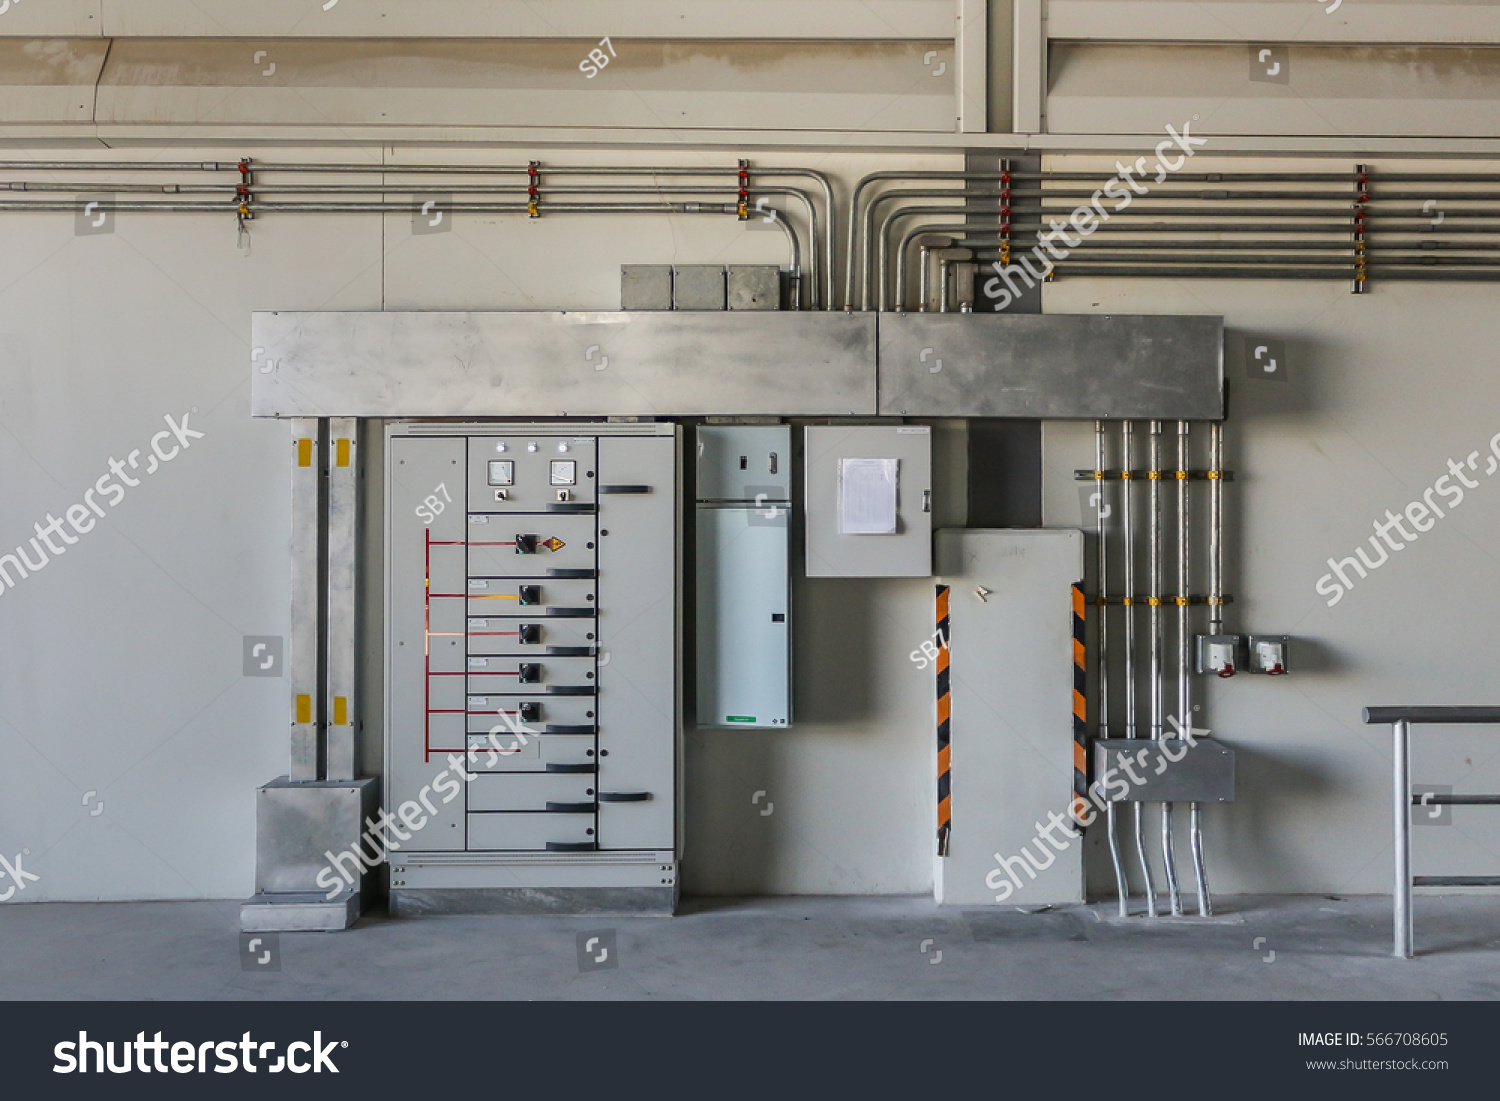 Building Electrical Panel : Electrical panel control distribute power stock